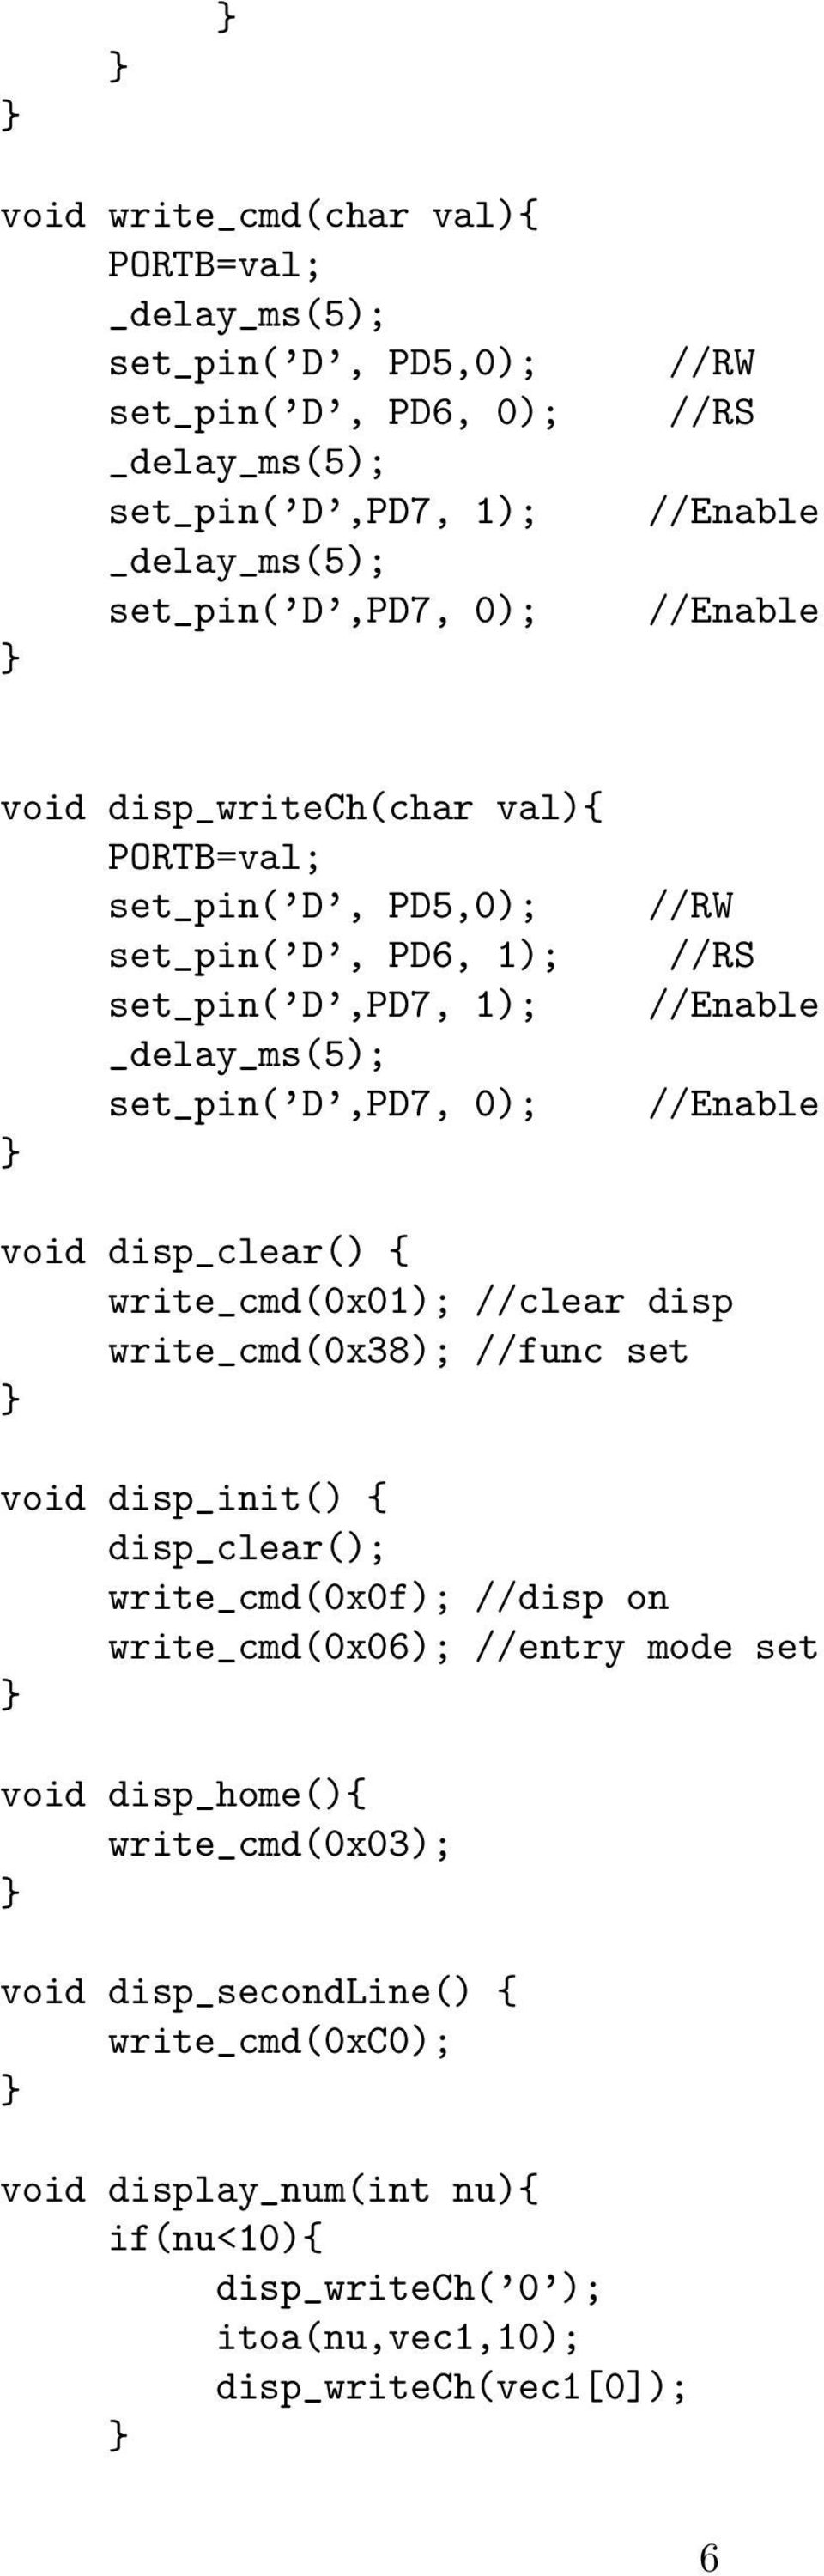 //Enable void disp_clear() { write_cmd(0x01); //clear disp write_cmd(0x38); //func set void disp_init() { disp_clear(); write_cmd(0x0f); //disp on write_cmd(0x06); //entry